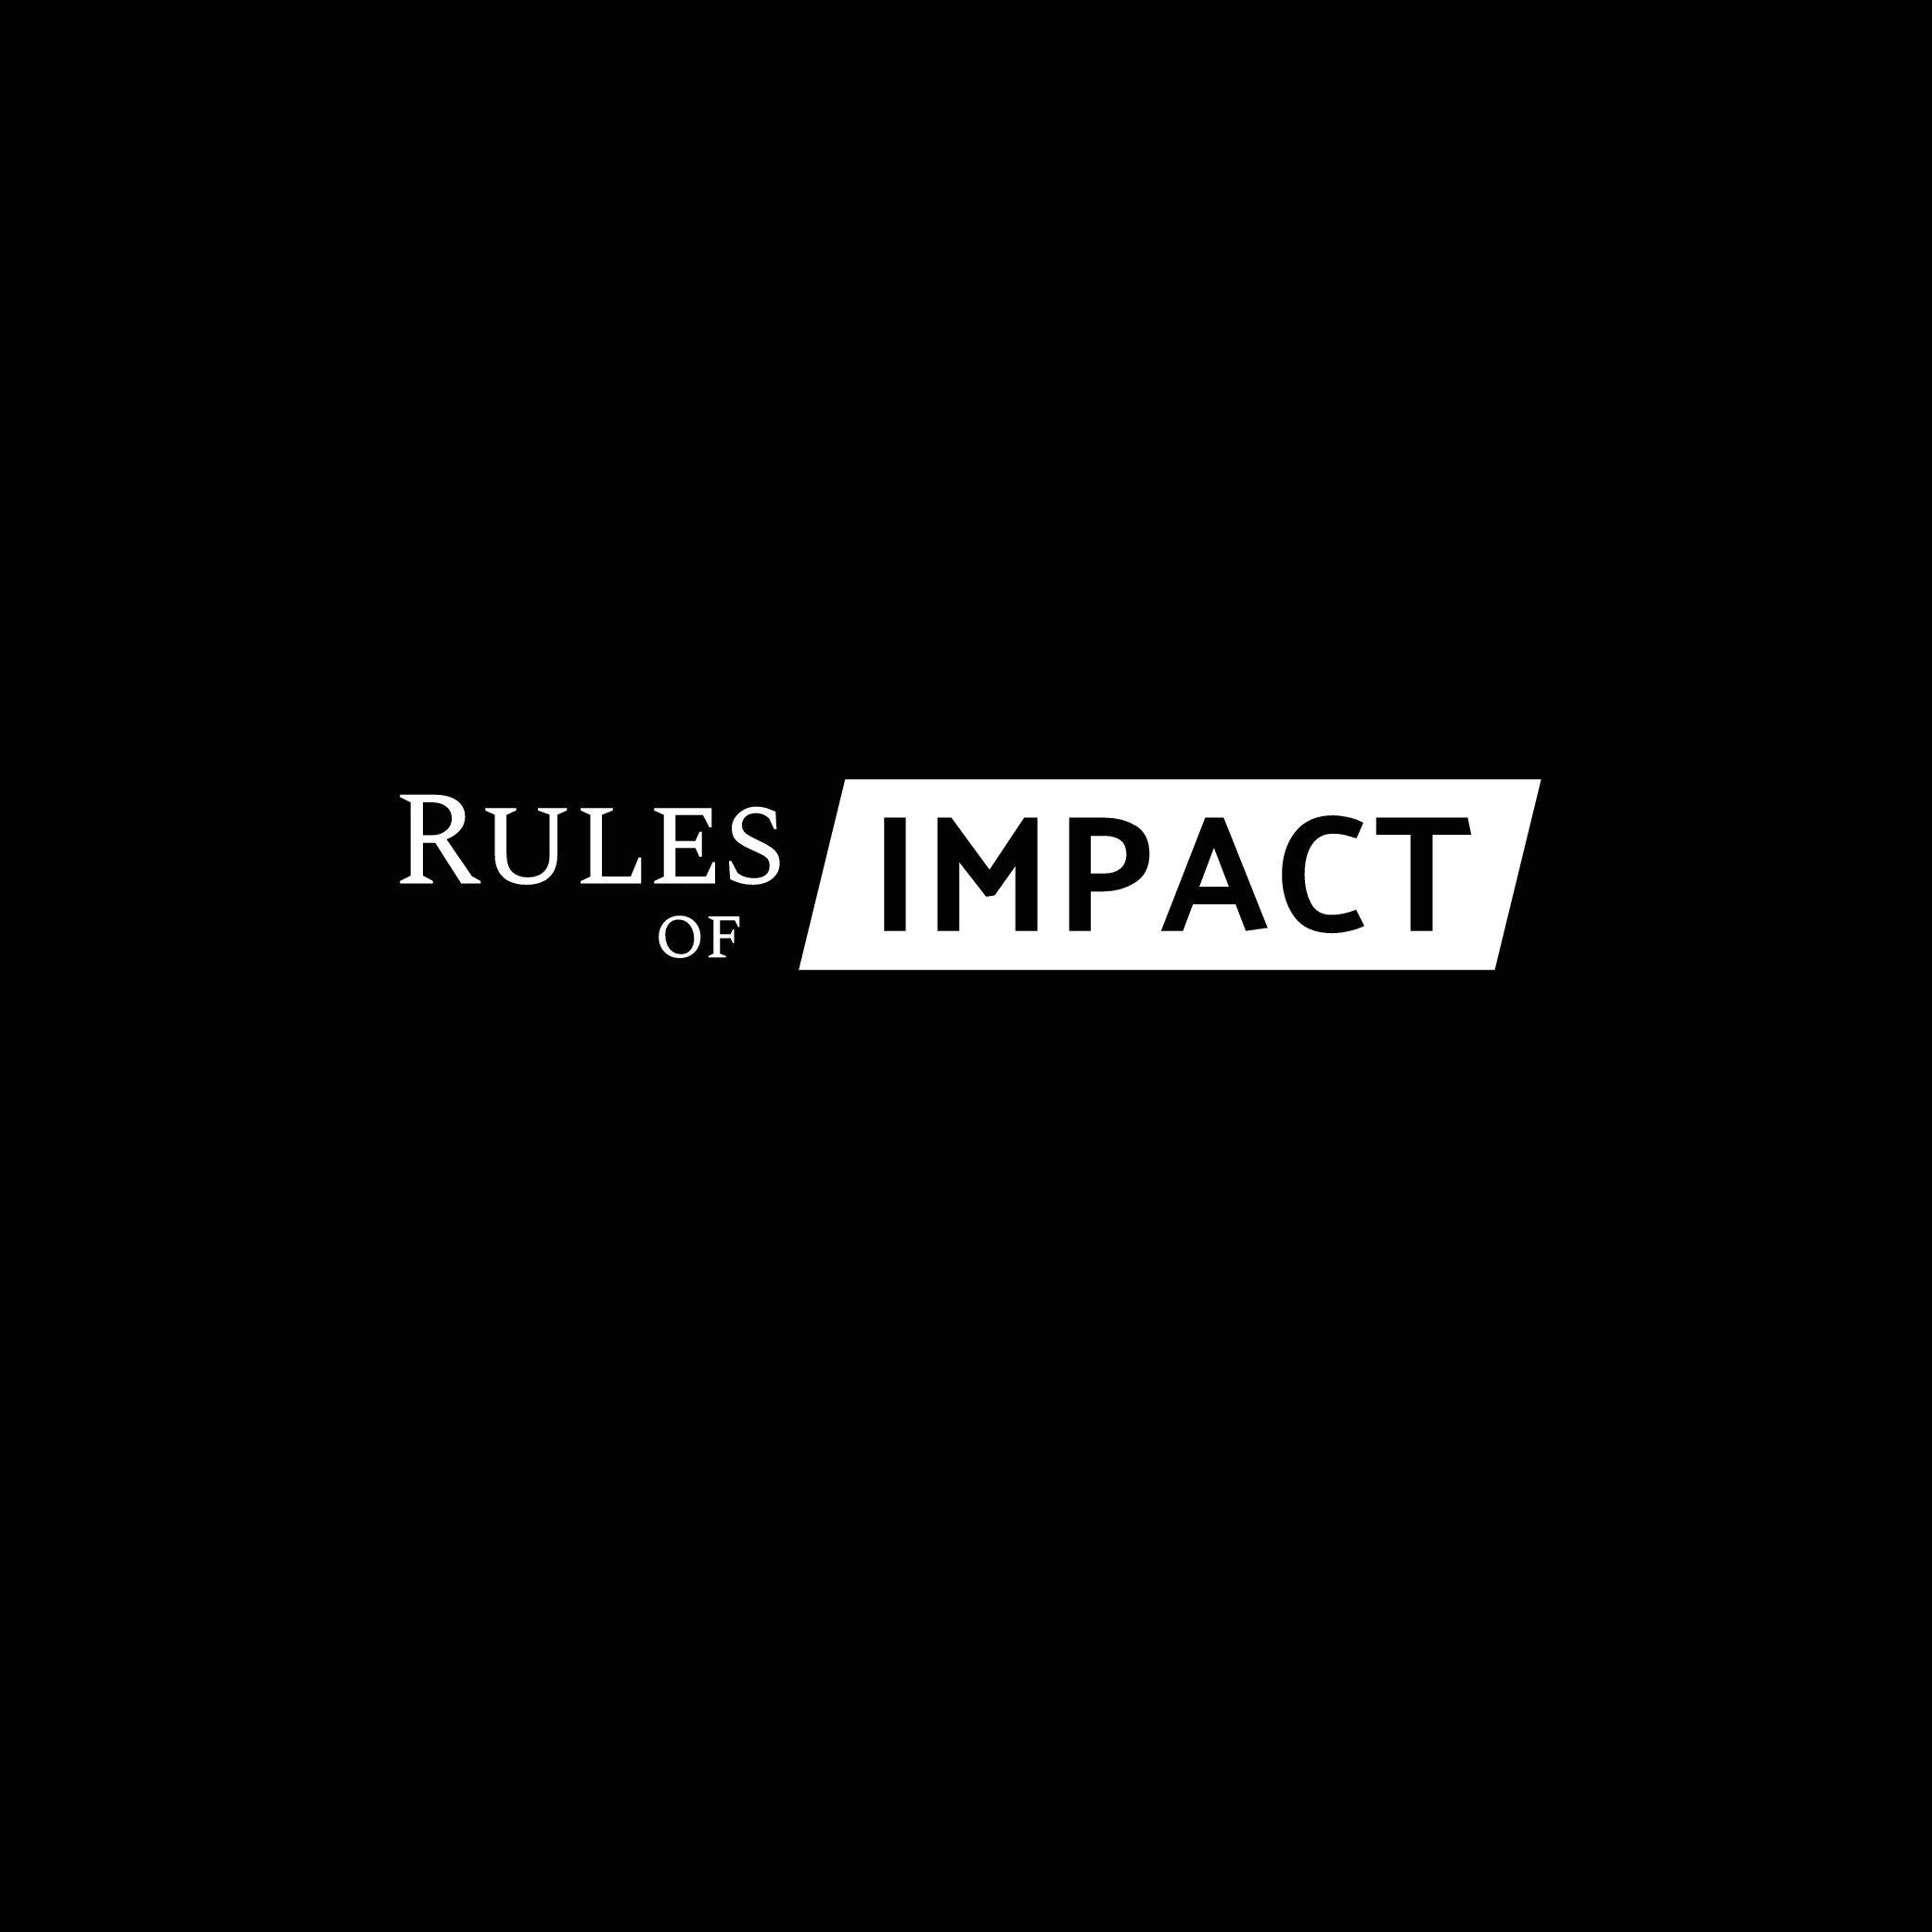 """Create a logo with IMPACT for a small business called """"Rules of Impact"""""""